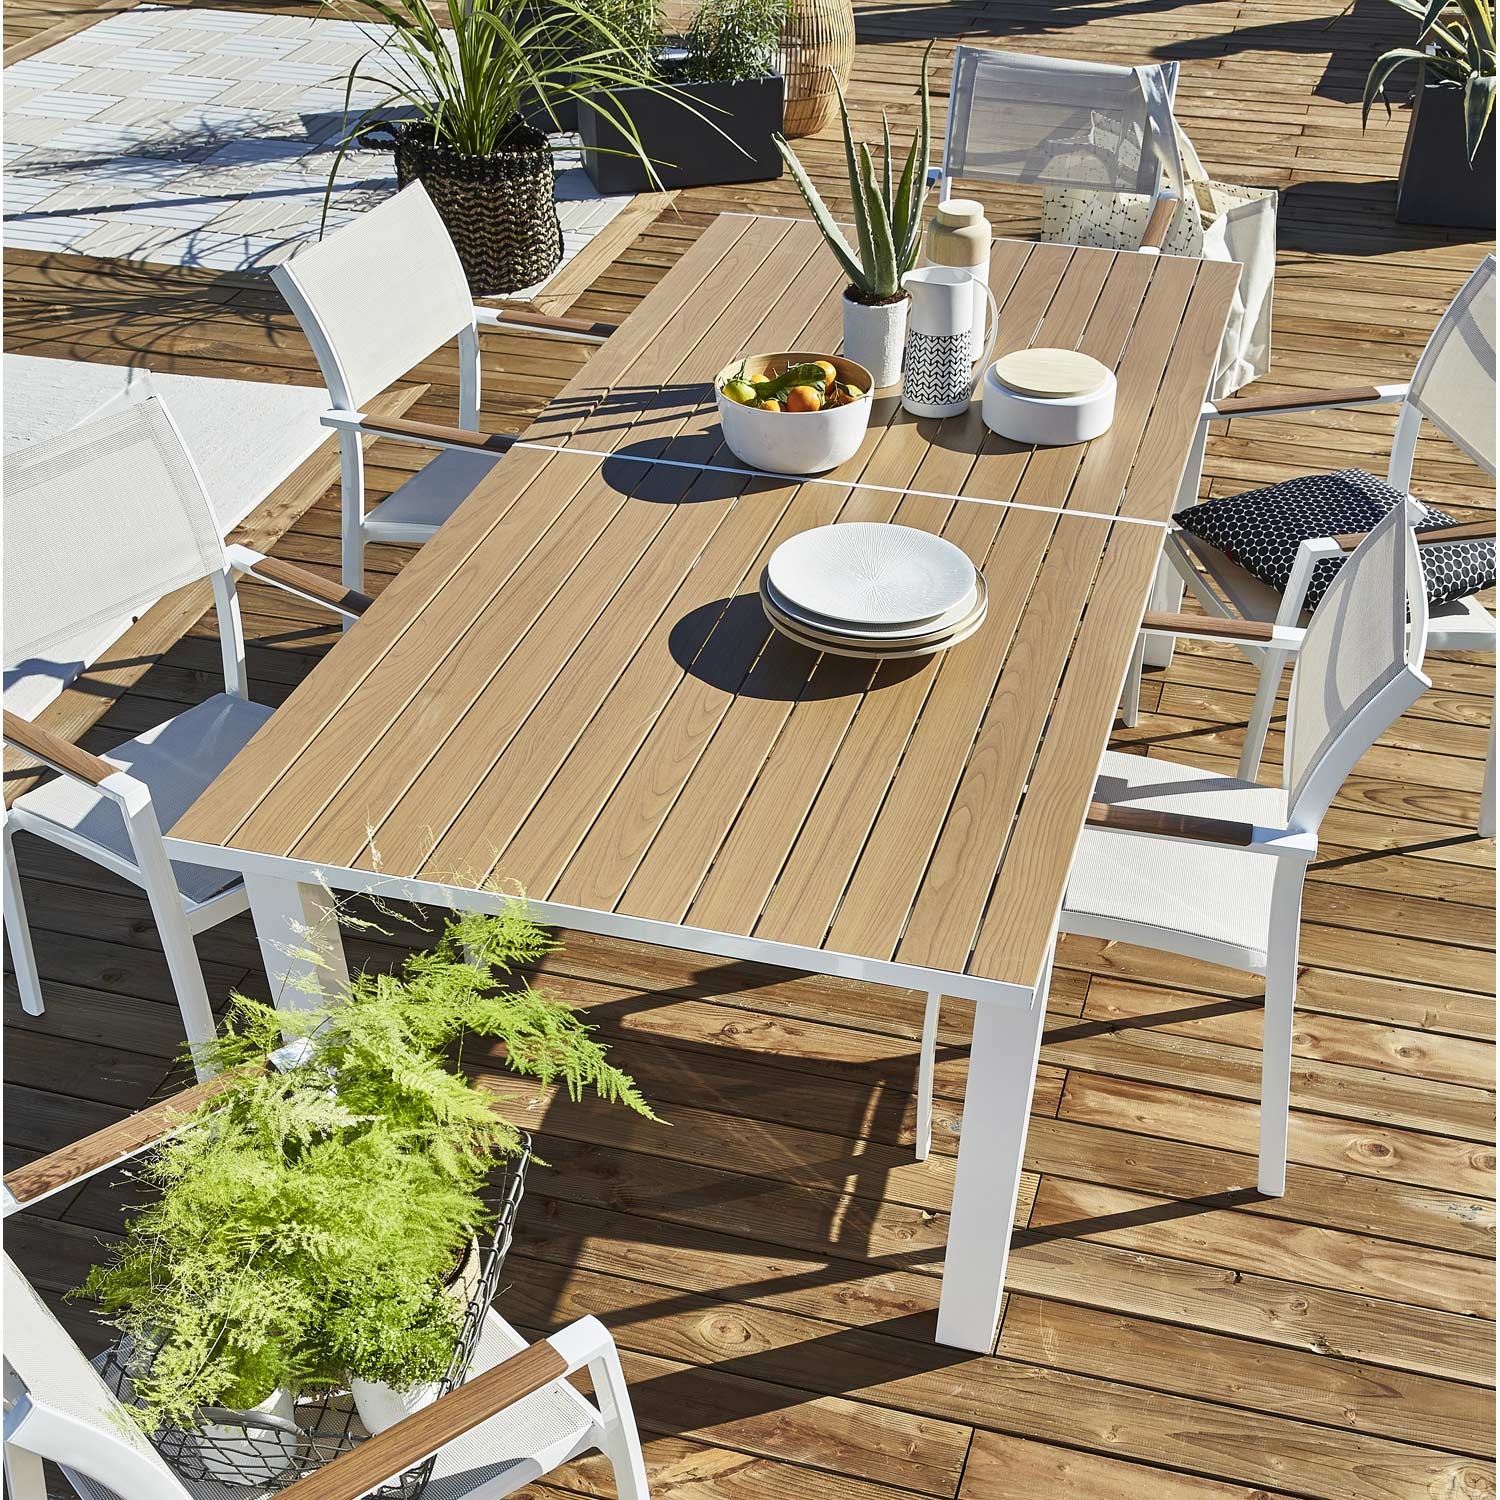 Salon de jardin bois blanc id es de d coration int rieure french decor - Salon de jardin en bois intermarche ...